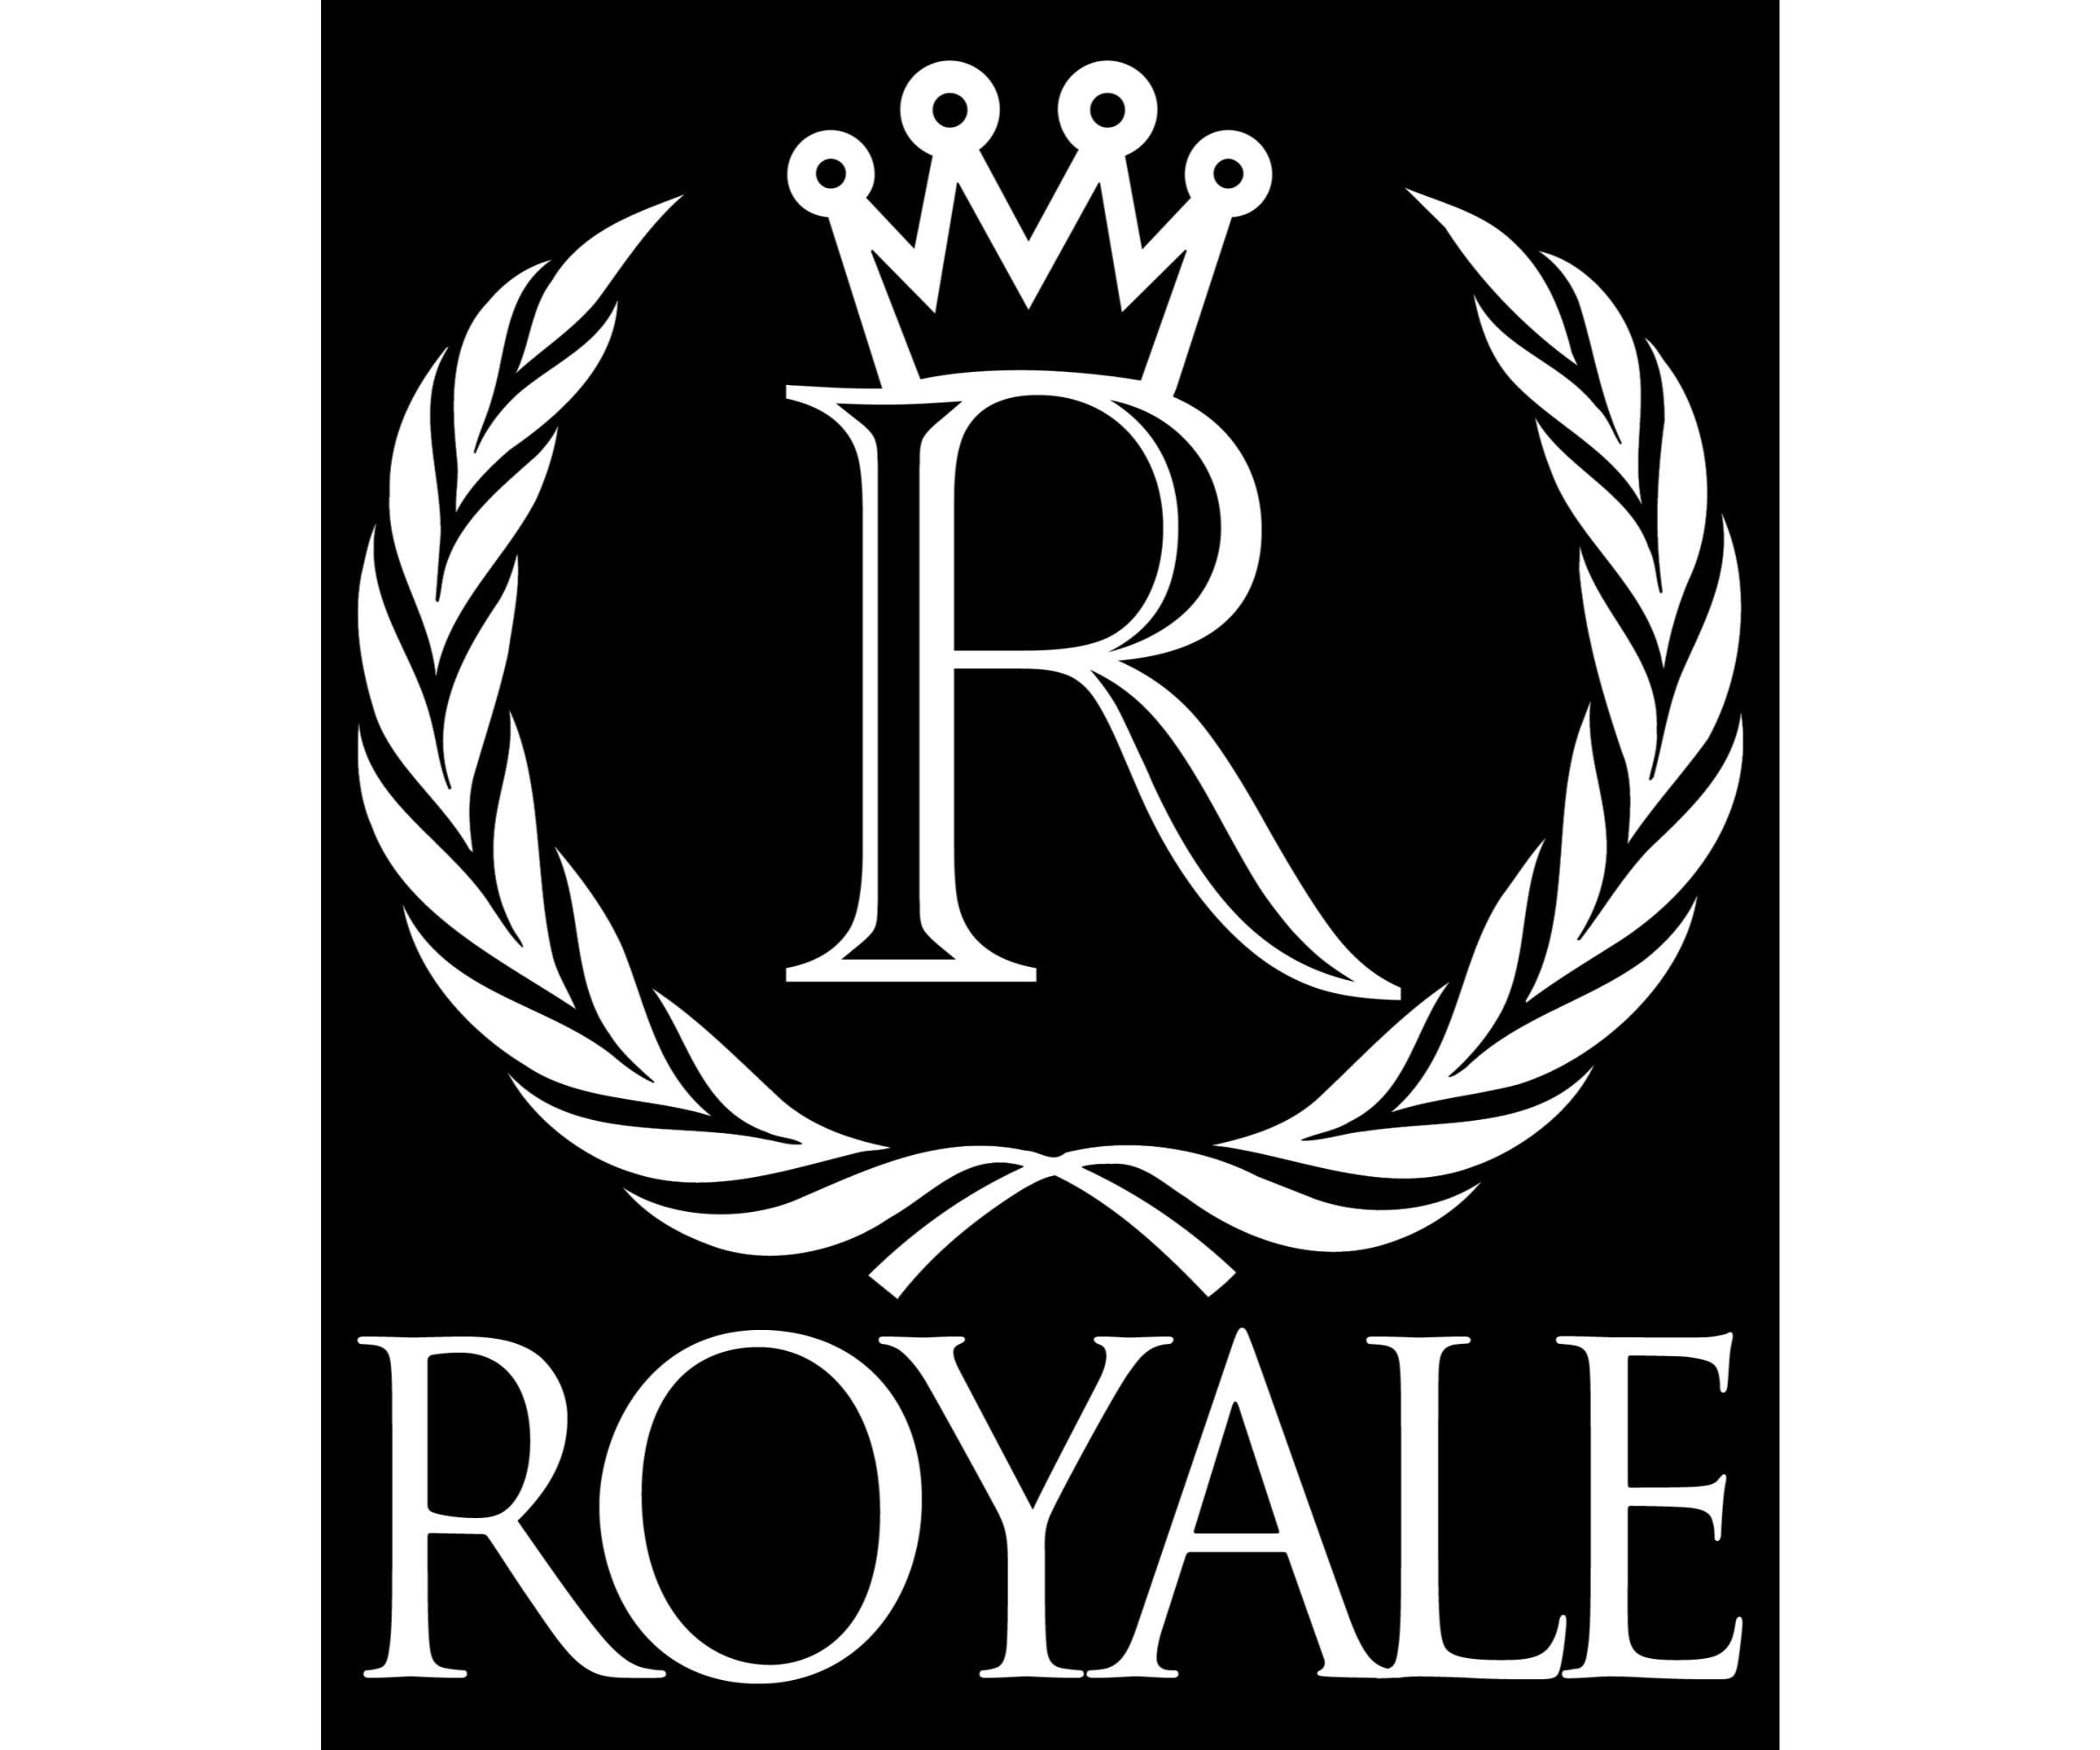 Chase Björnson The Man Behind Royale | Unbelievab.ly